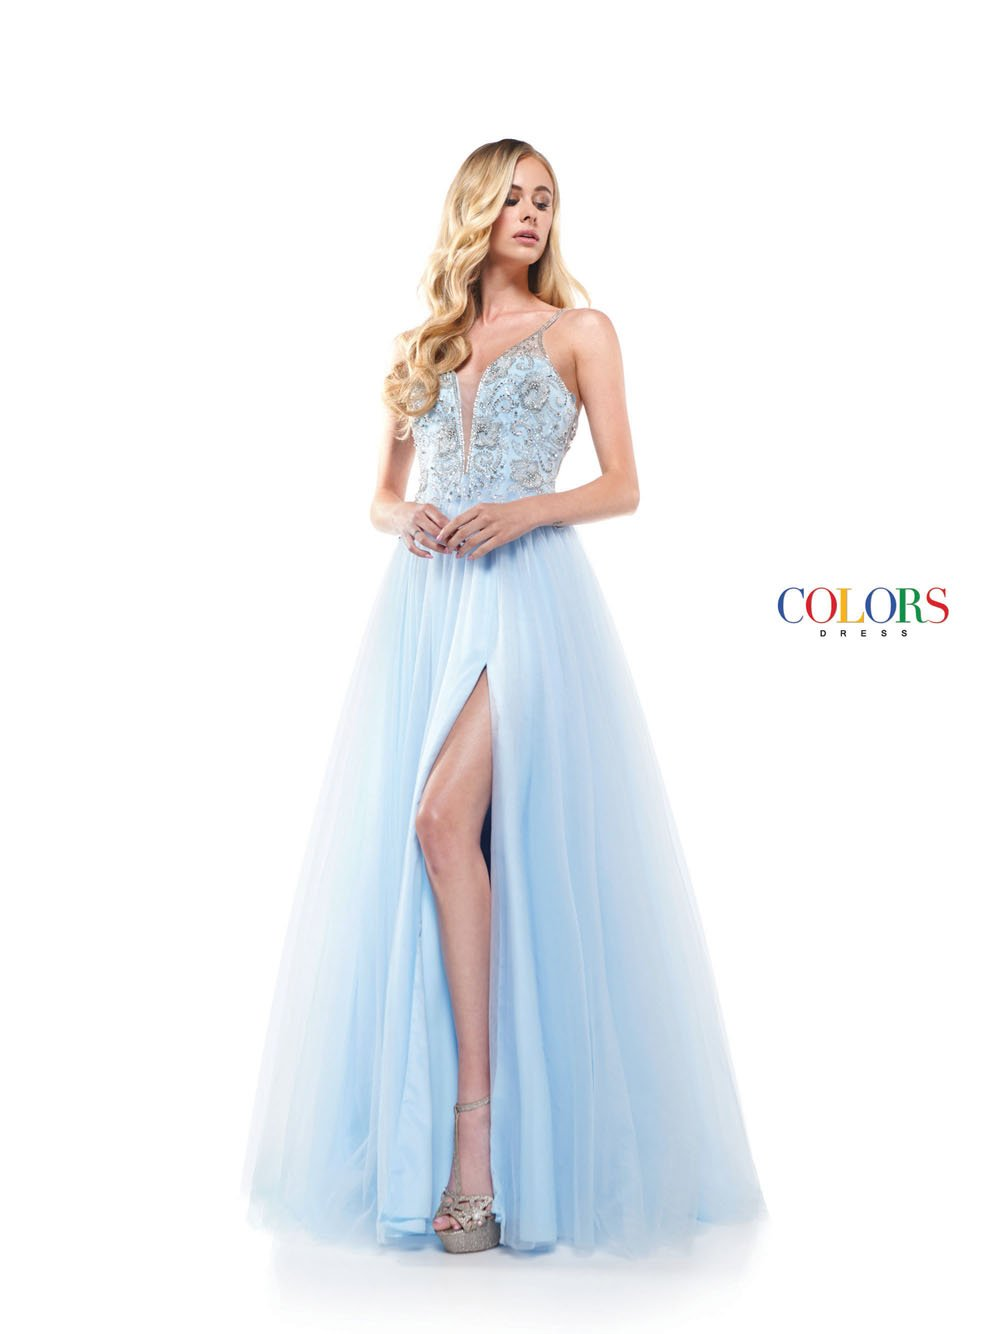 Colors Dress 2283 prom dress images.  Colors 2283 dresses are available in these colors: Light Blue, Canary, Emerald, Dusty Lilac.